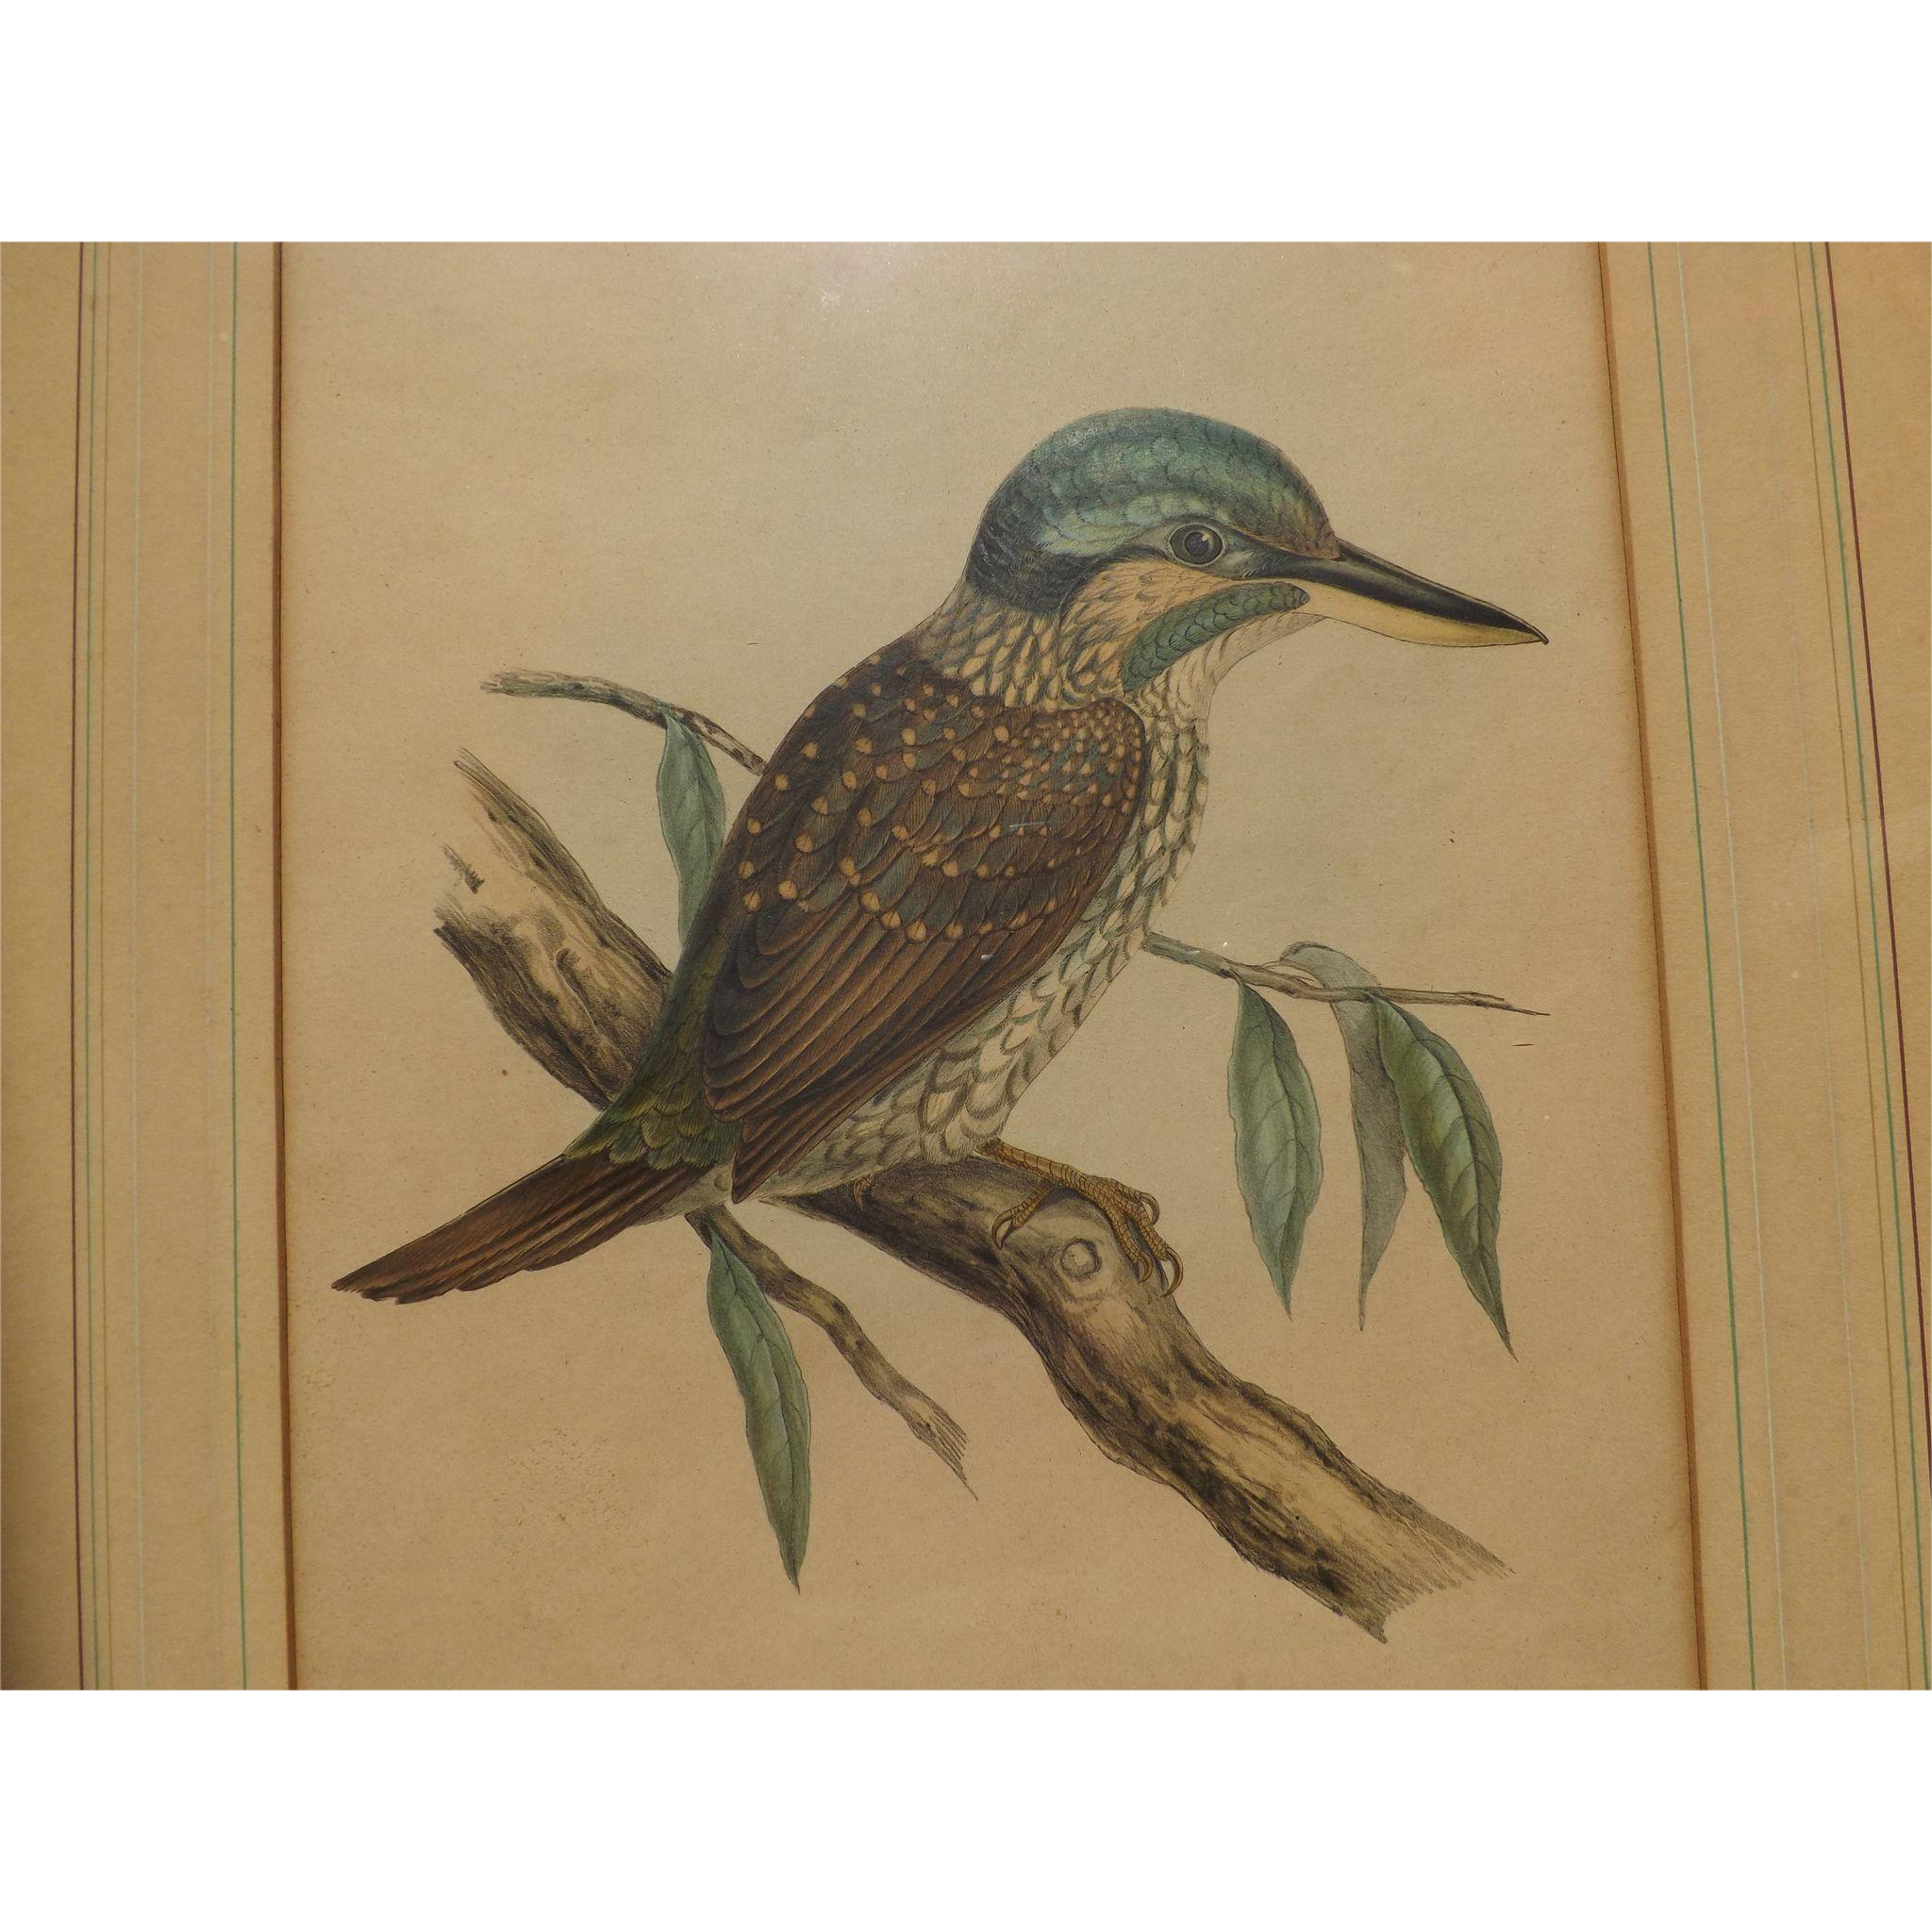 Antique Bird Print - Hullmandel & Walton hand colored lithograph Halcyon